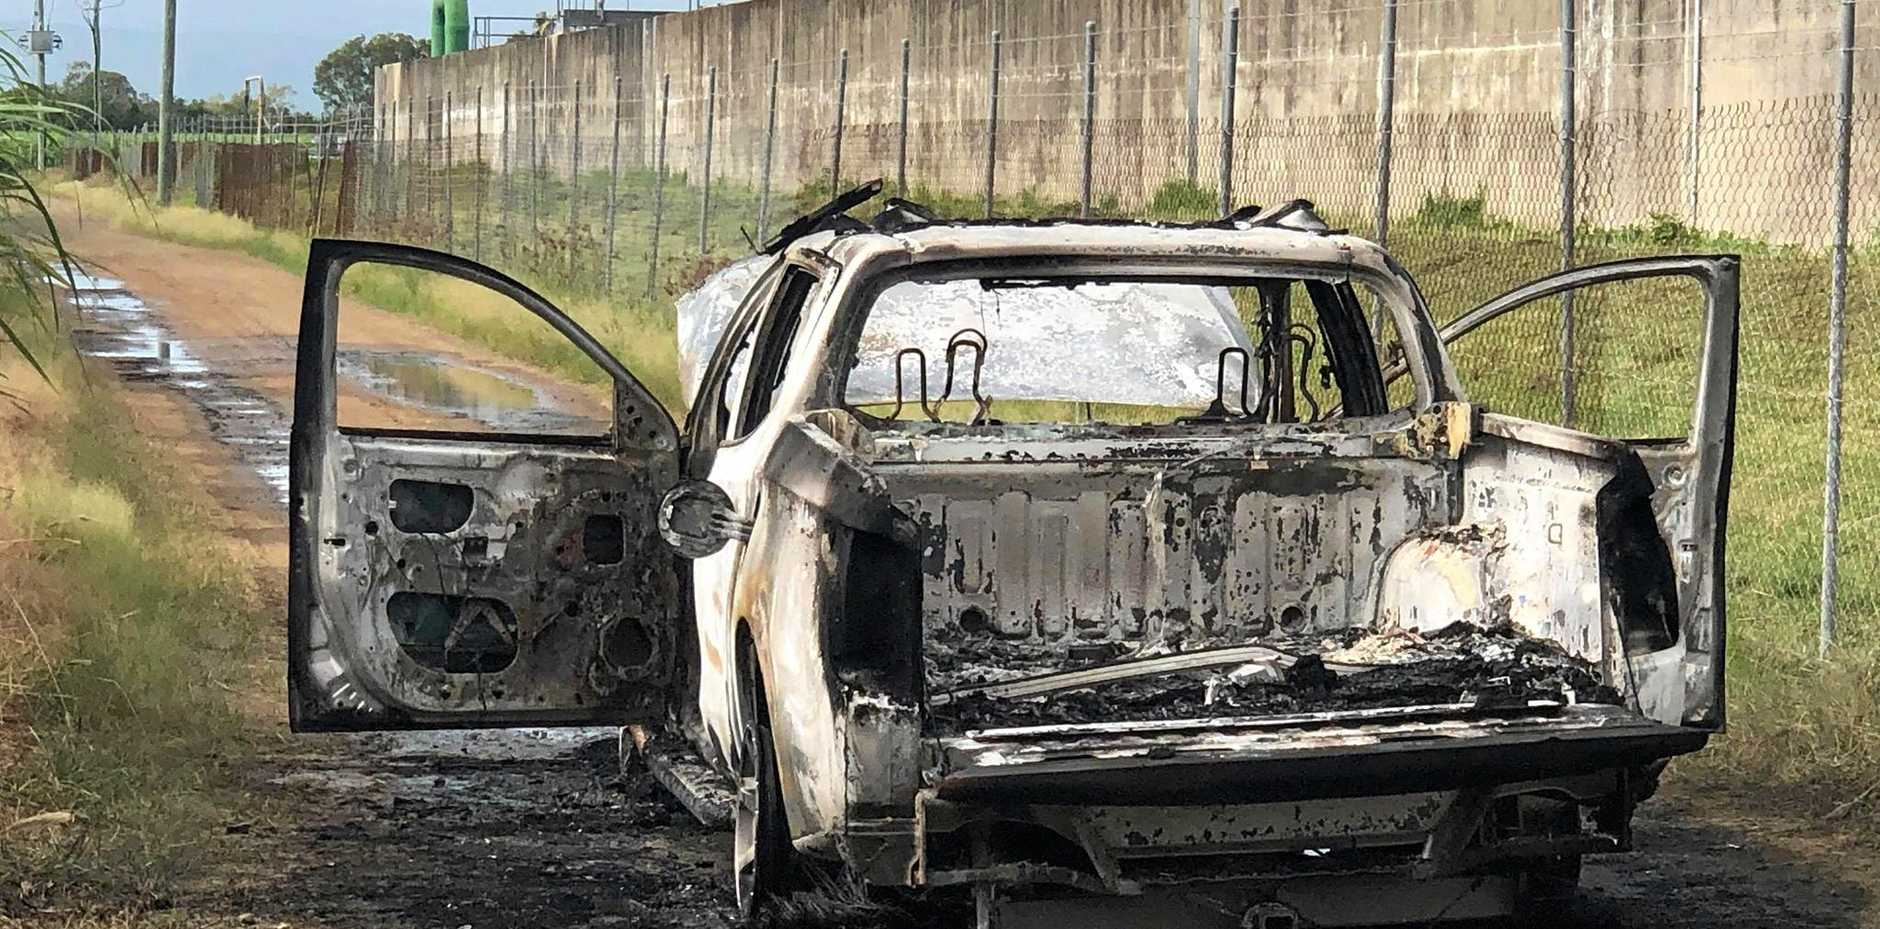 A car that is suspected to be stolen was found torched near the water treatment plant at Bakers Creek this morning.